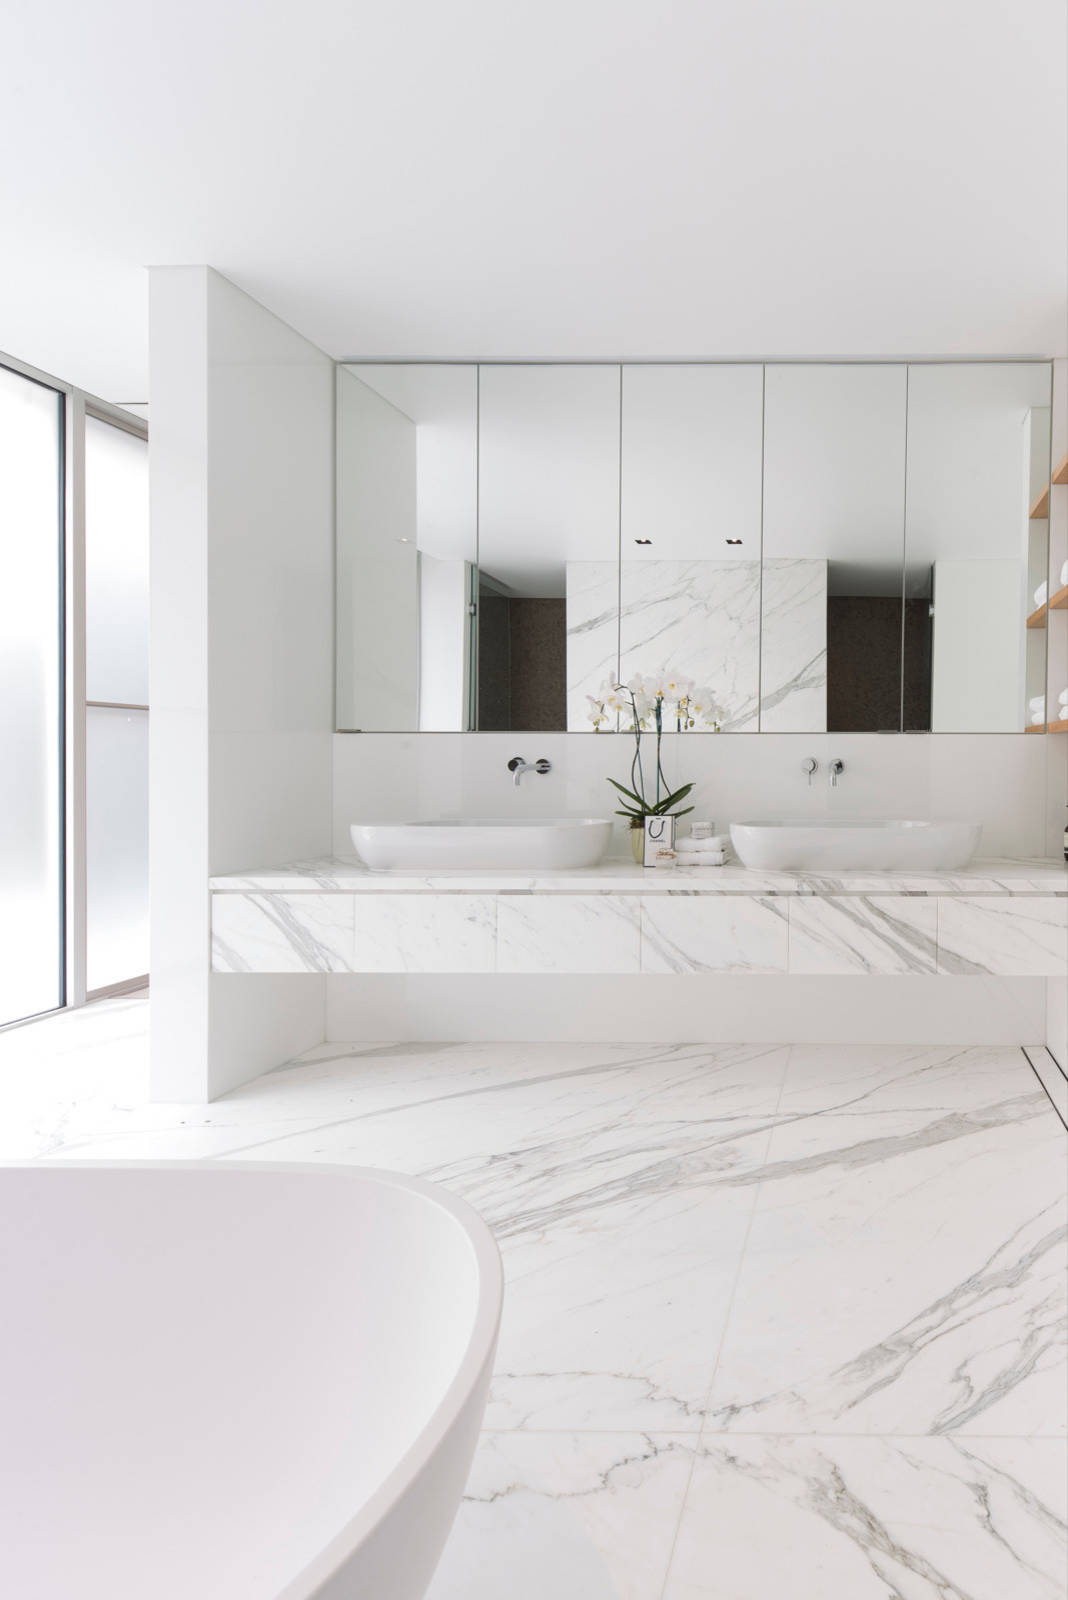 75 Beautiful Modern Marble Tile Bathroom Pictures Ideas December 2020 Houzz